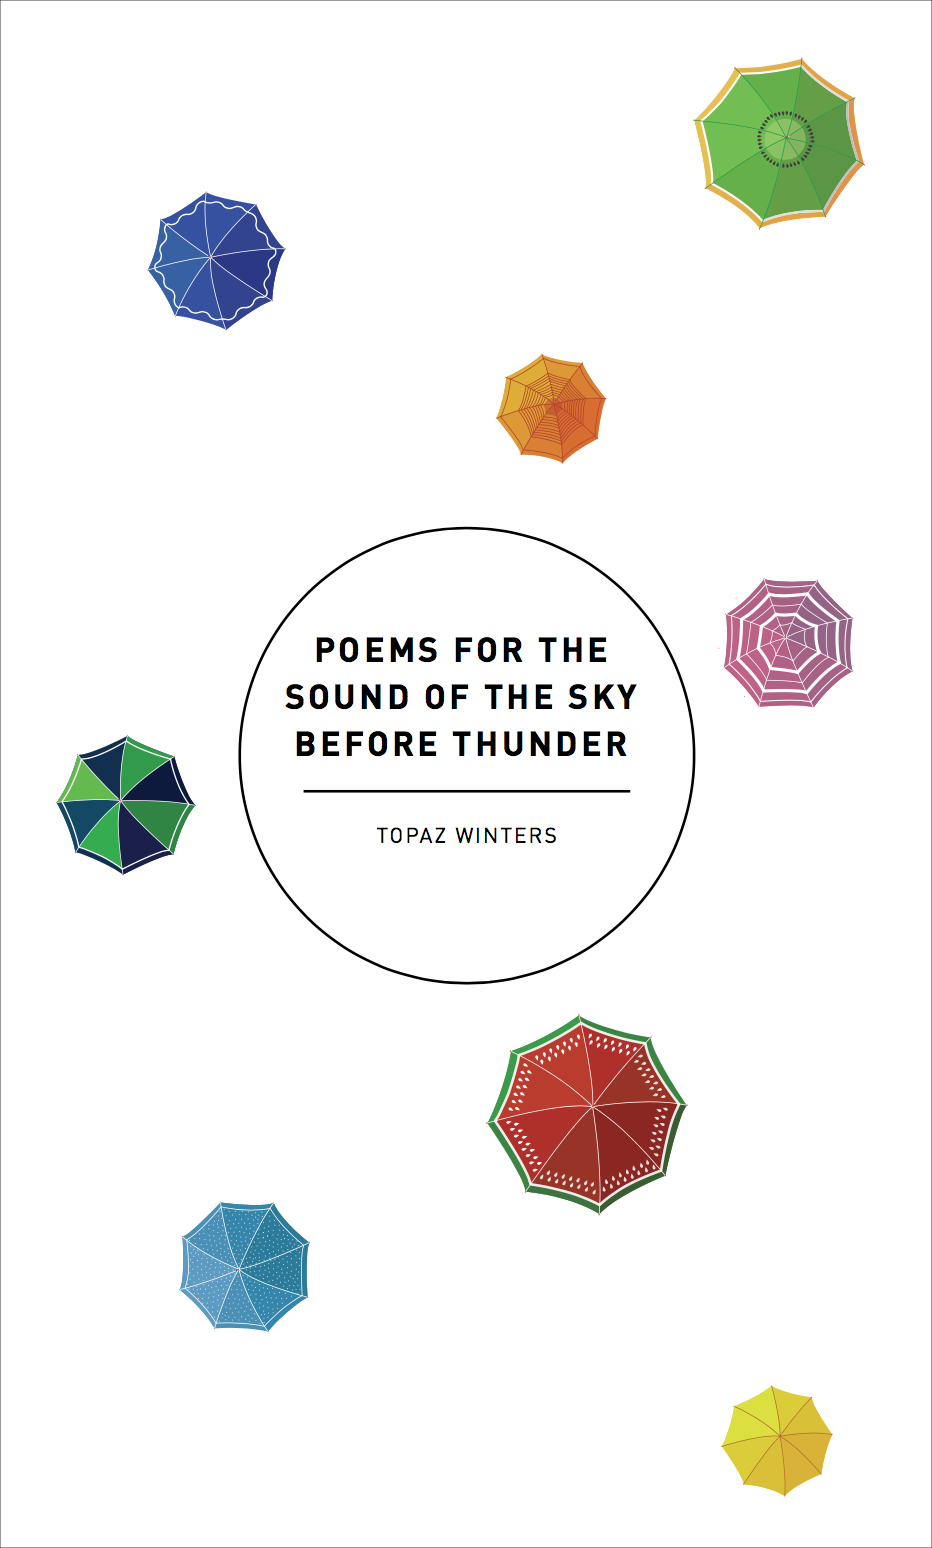 poems for the sound of the sky before thunder, 2017 -